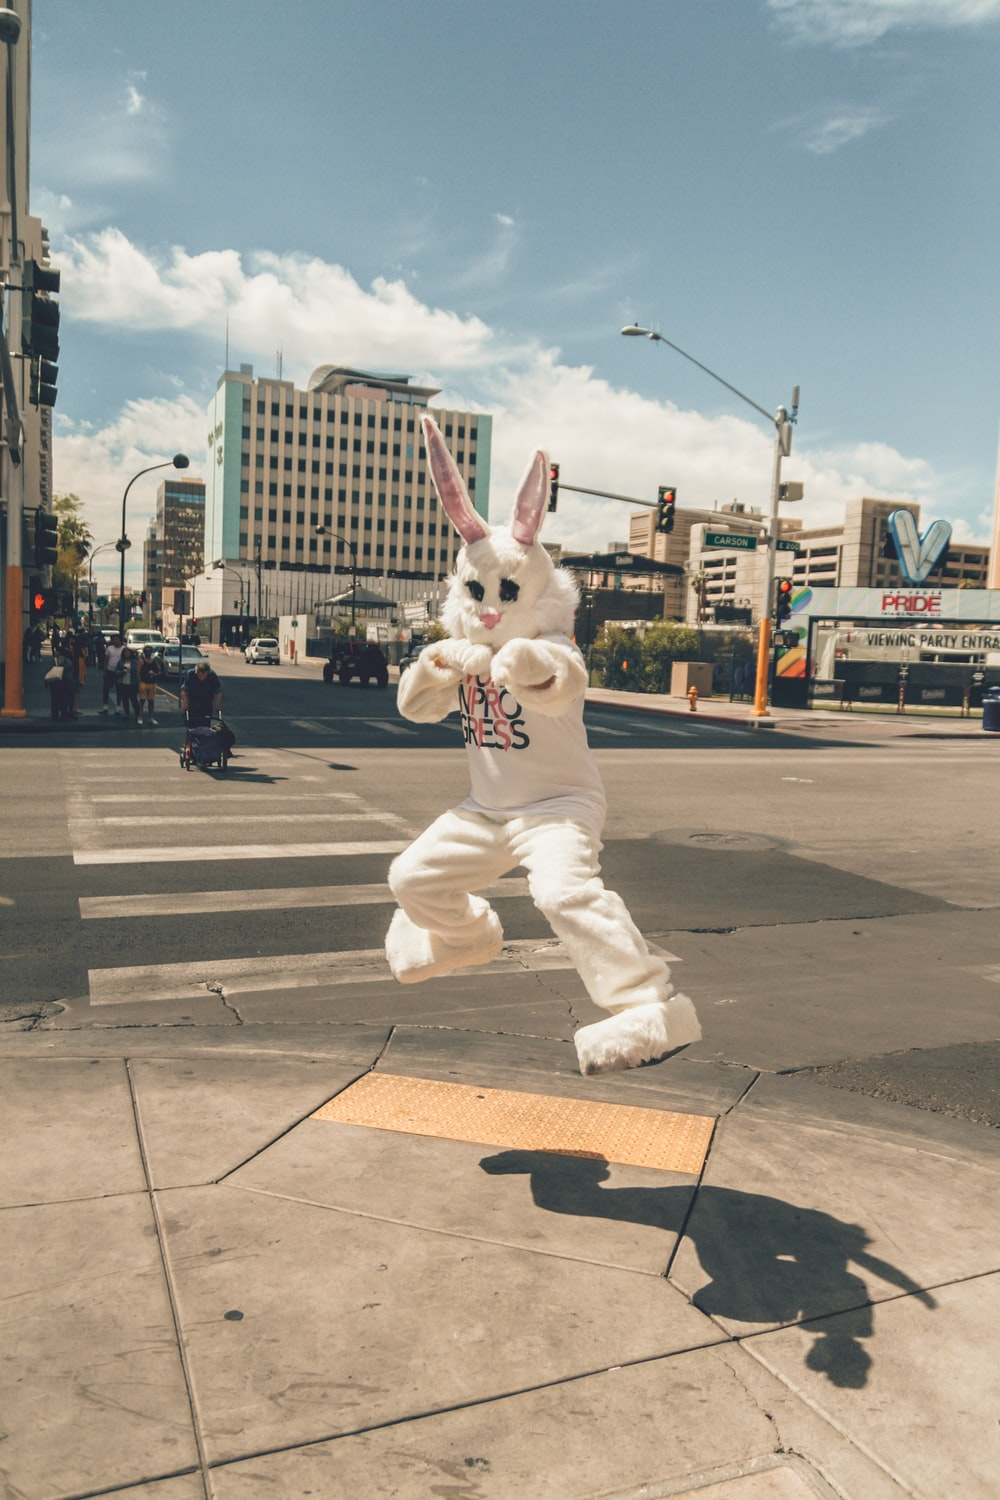 person in rabbit mascot jumping near road side